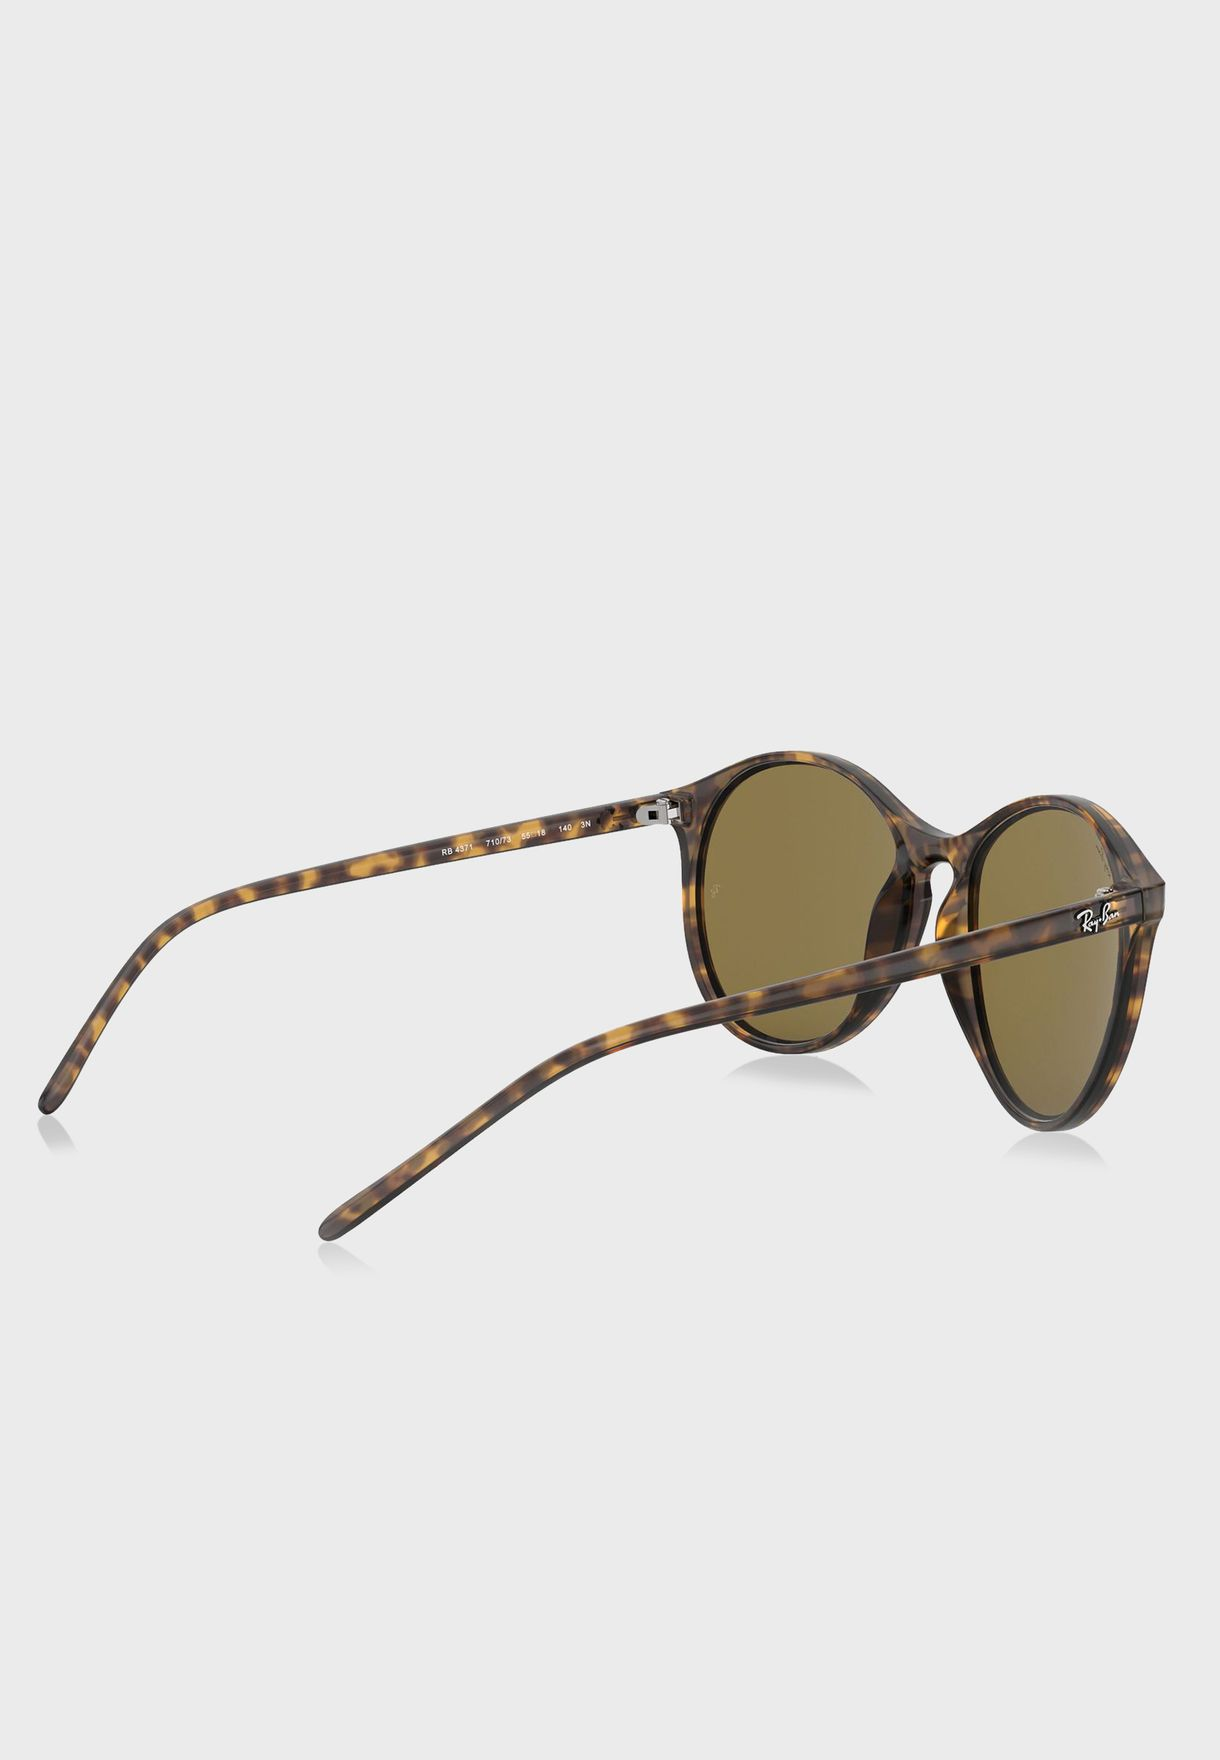 0RB4371 Wayfarer Sunglasses